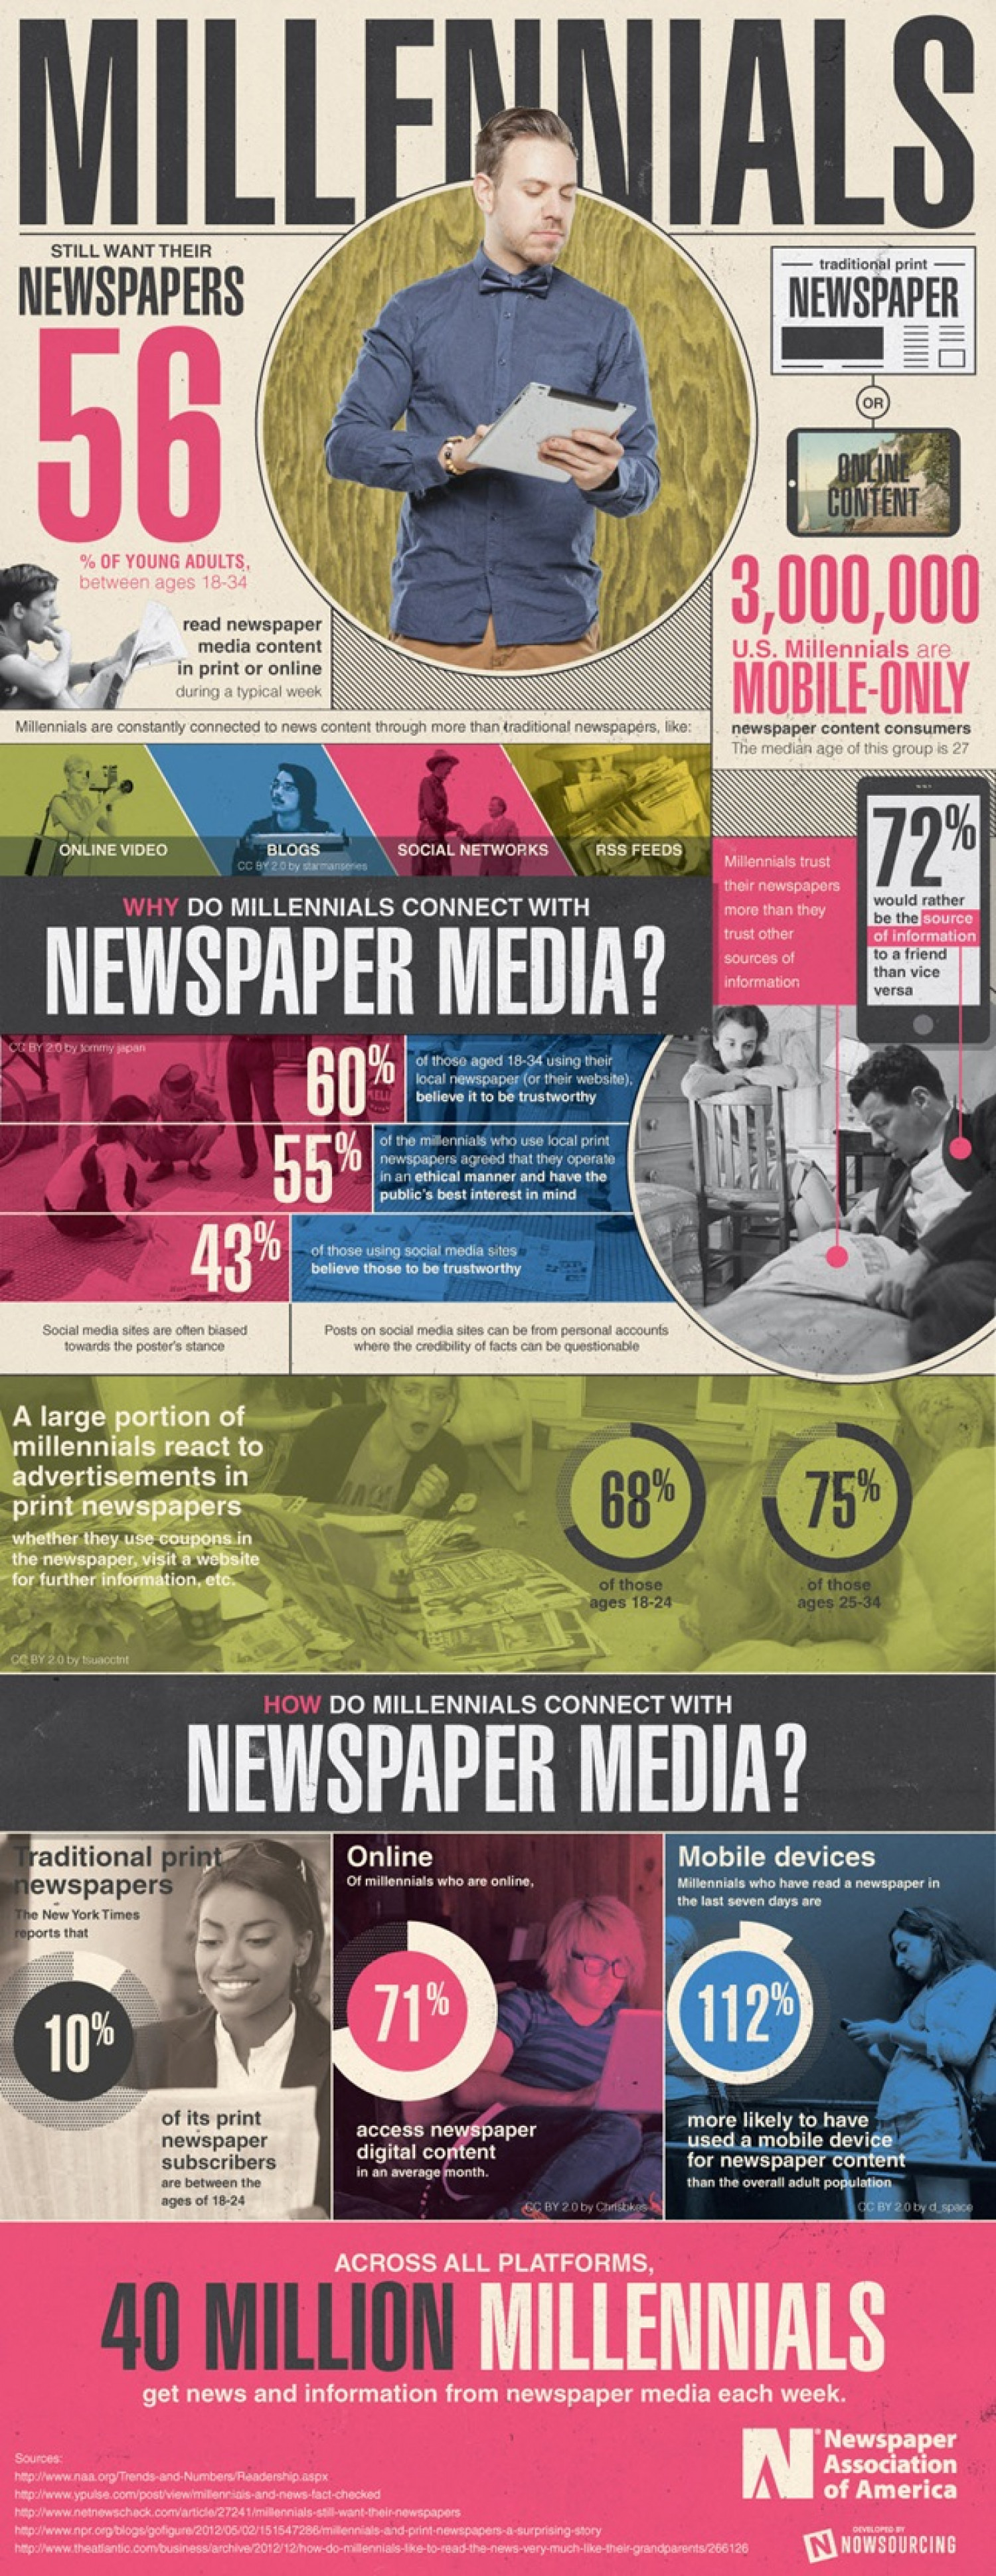 Millennials Still Want Their Newspapers Infographic